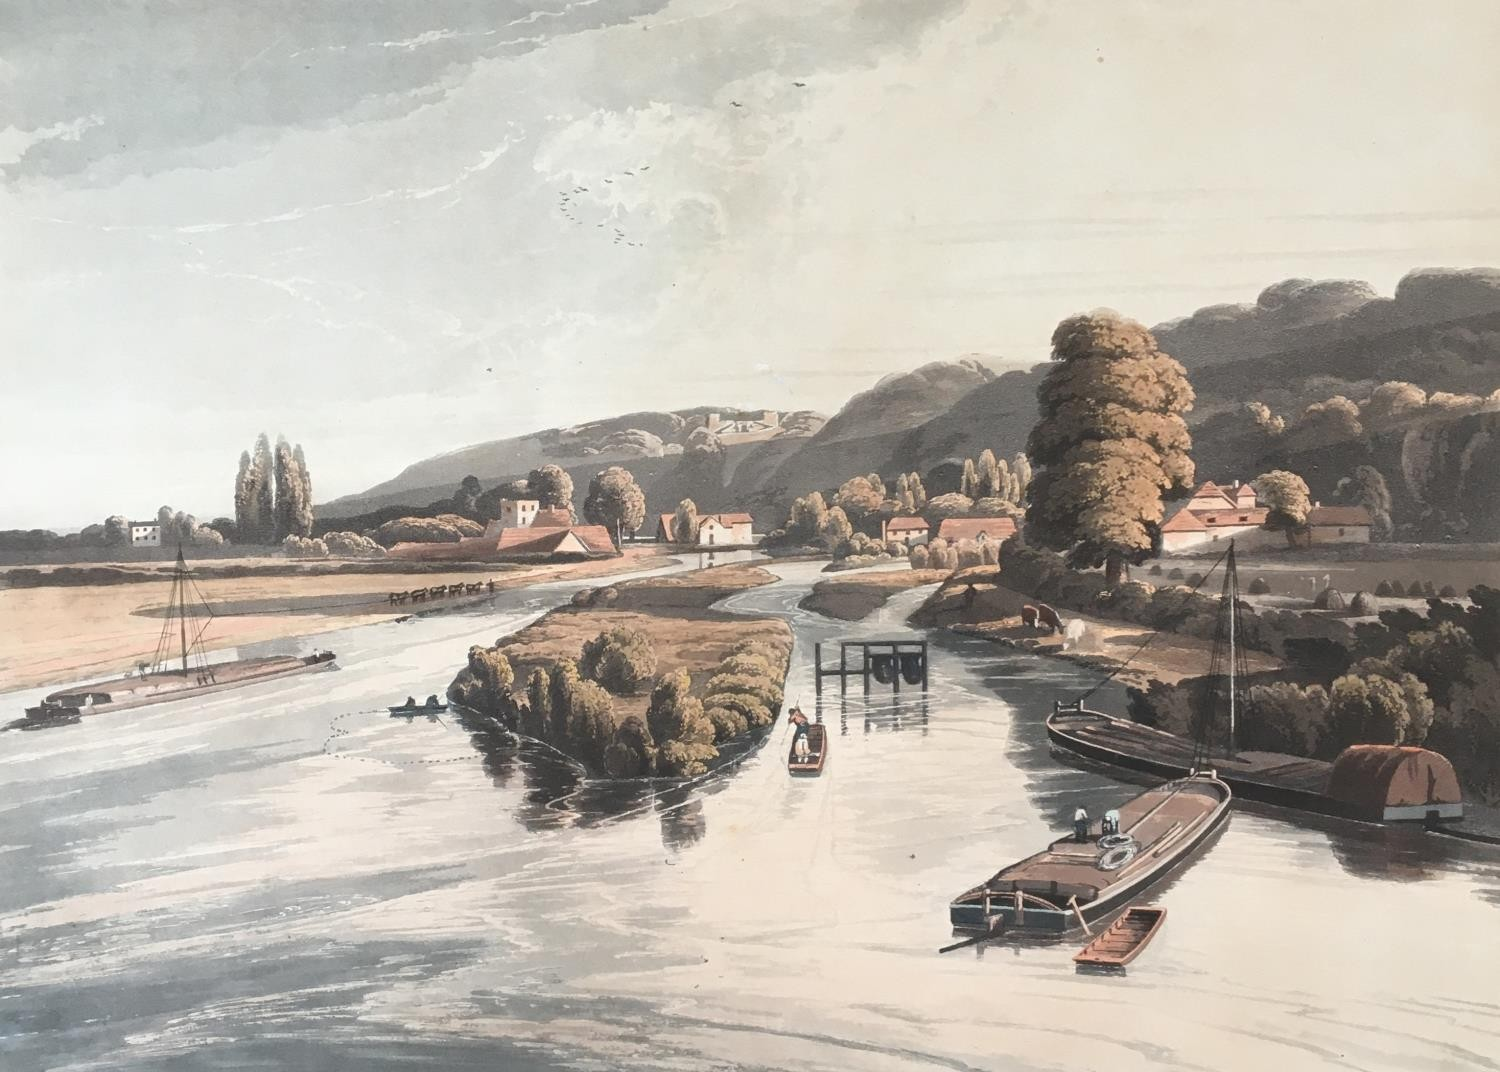 A collection of ten 19th century chromolithographs after William Havell, 'An Island On The Thames